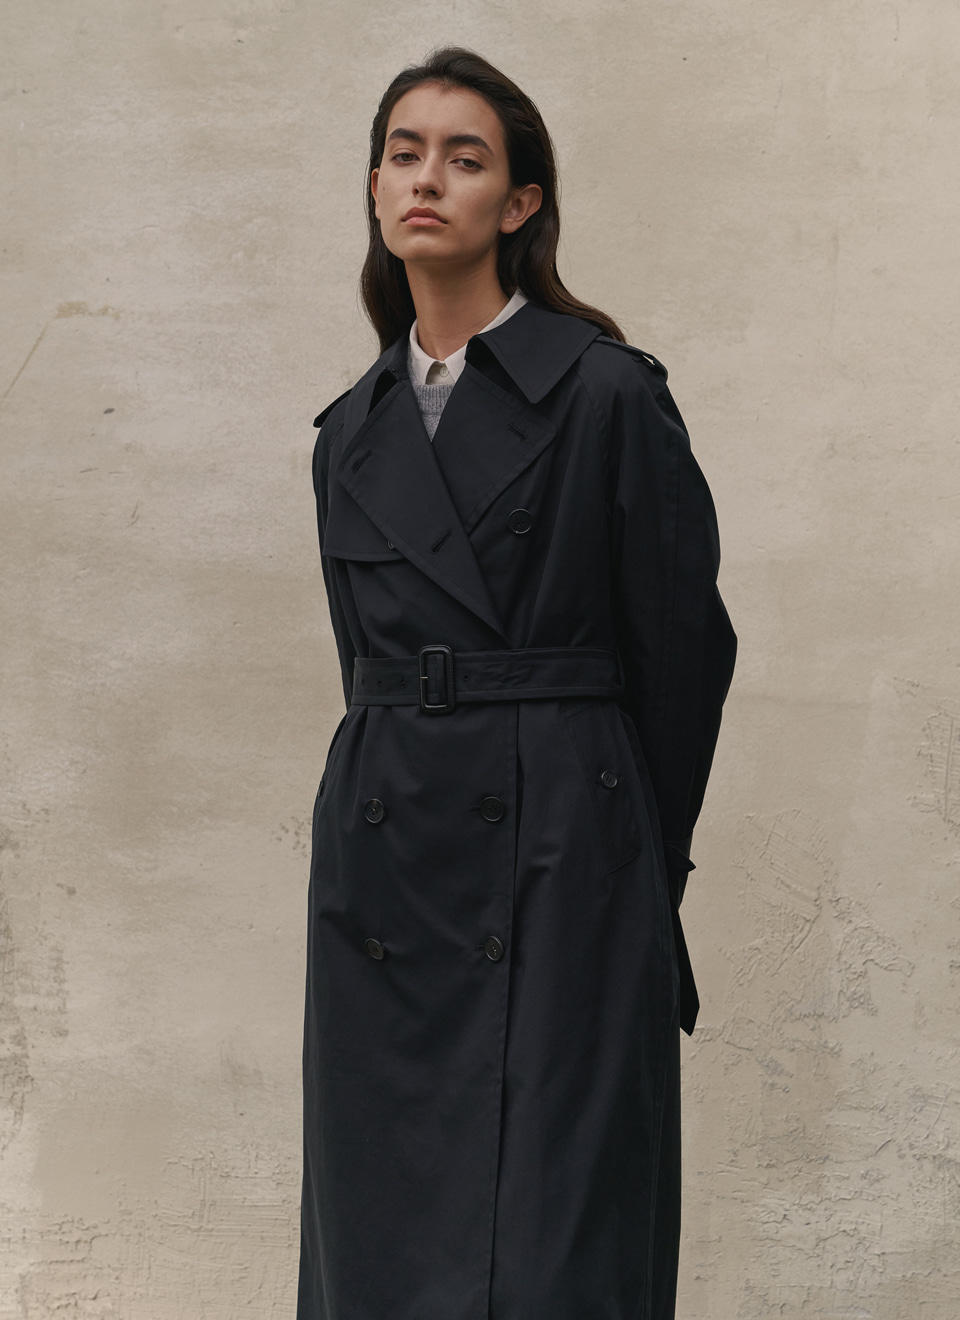 20 A/W LONG TRENCH COAT BLACK